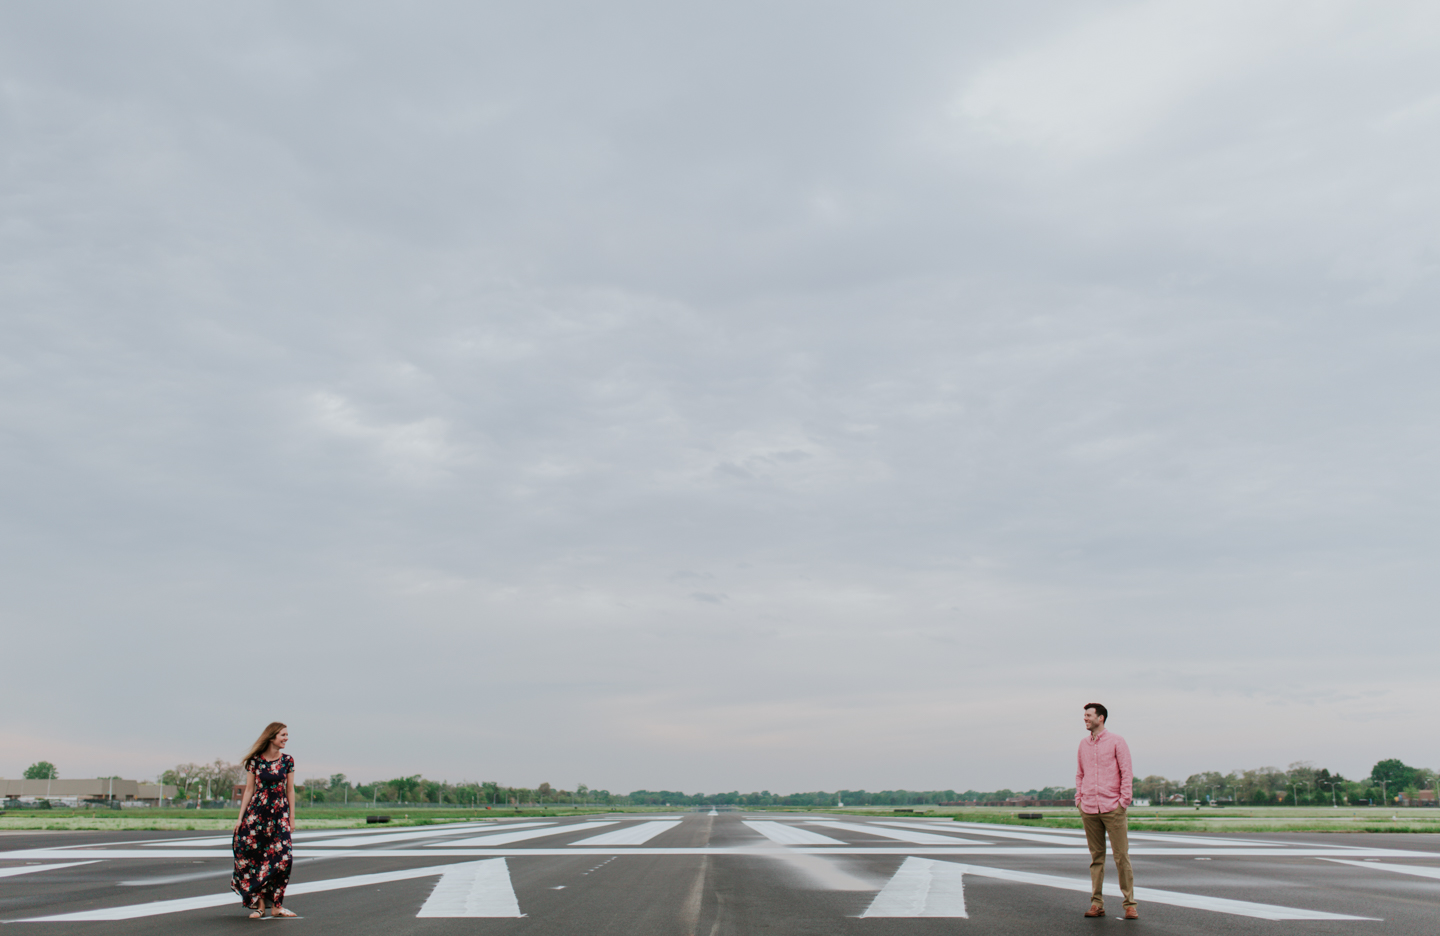 LGP-Detroit-Airport-Hanger-Engagement-Session-11.jpg